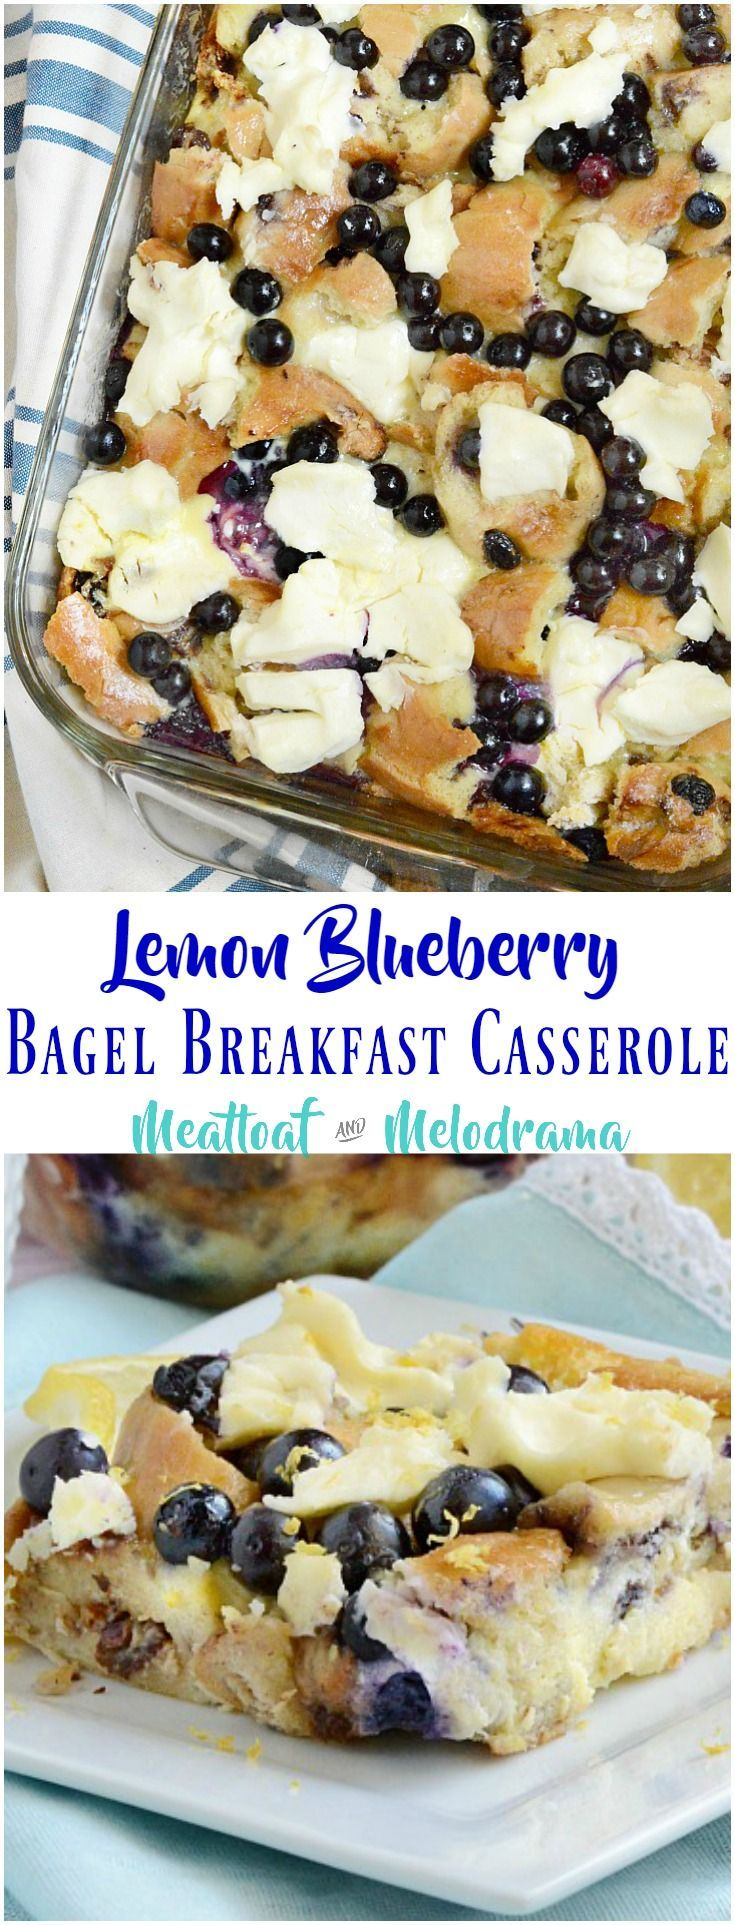 Lemon Blueberry Bagel Breakfast Casserole -  An easy make ahead breakfast or brunch using leftover bagels. Assemble the night before and bake in the morning. Perfect for Easter, Mother's Day or anytime! from